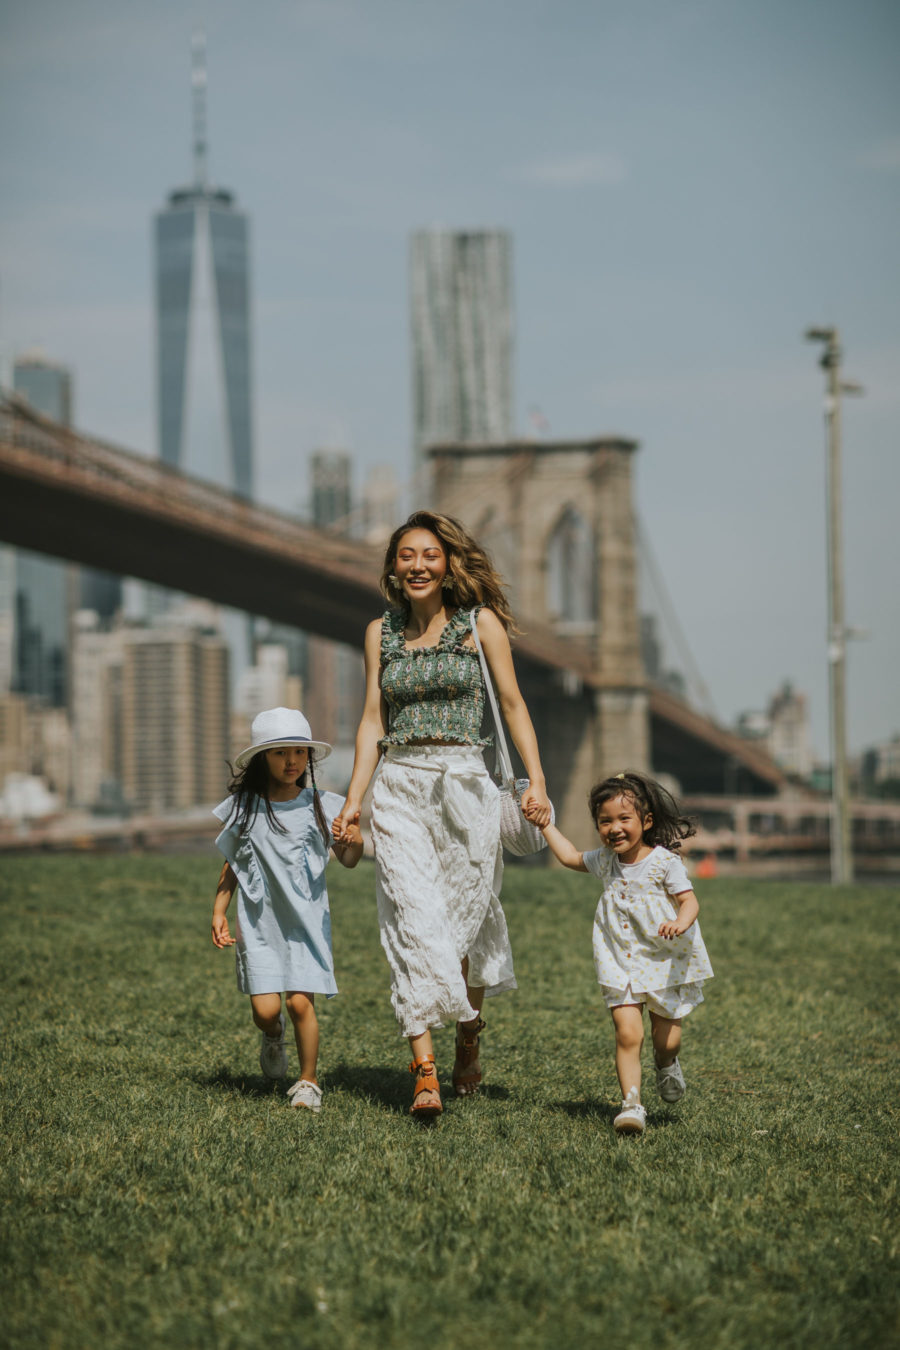 How I Spent My Memorial Day Weekend - smocked top, wrap skirt, summer outfit, casual summer outfit, cute kids fashion, nyc family trip // Notjessfashion.com